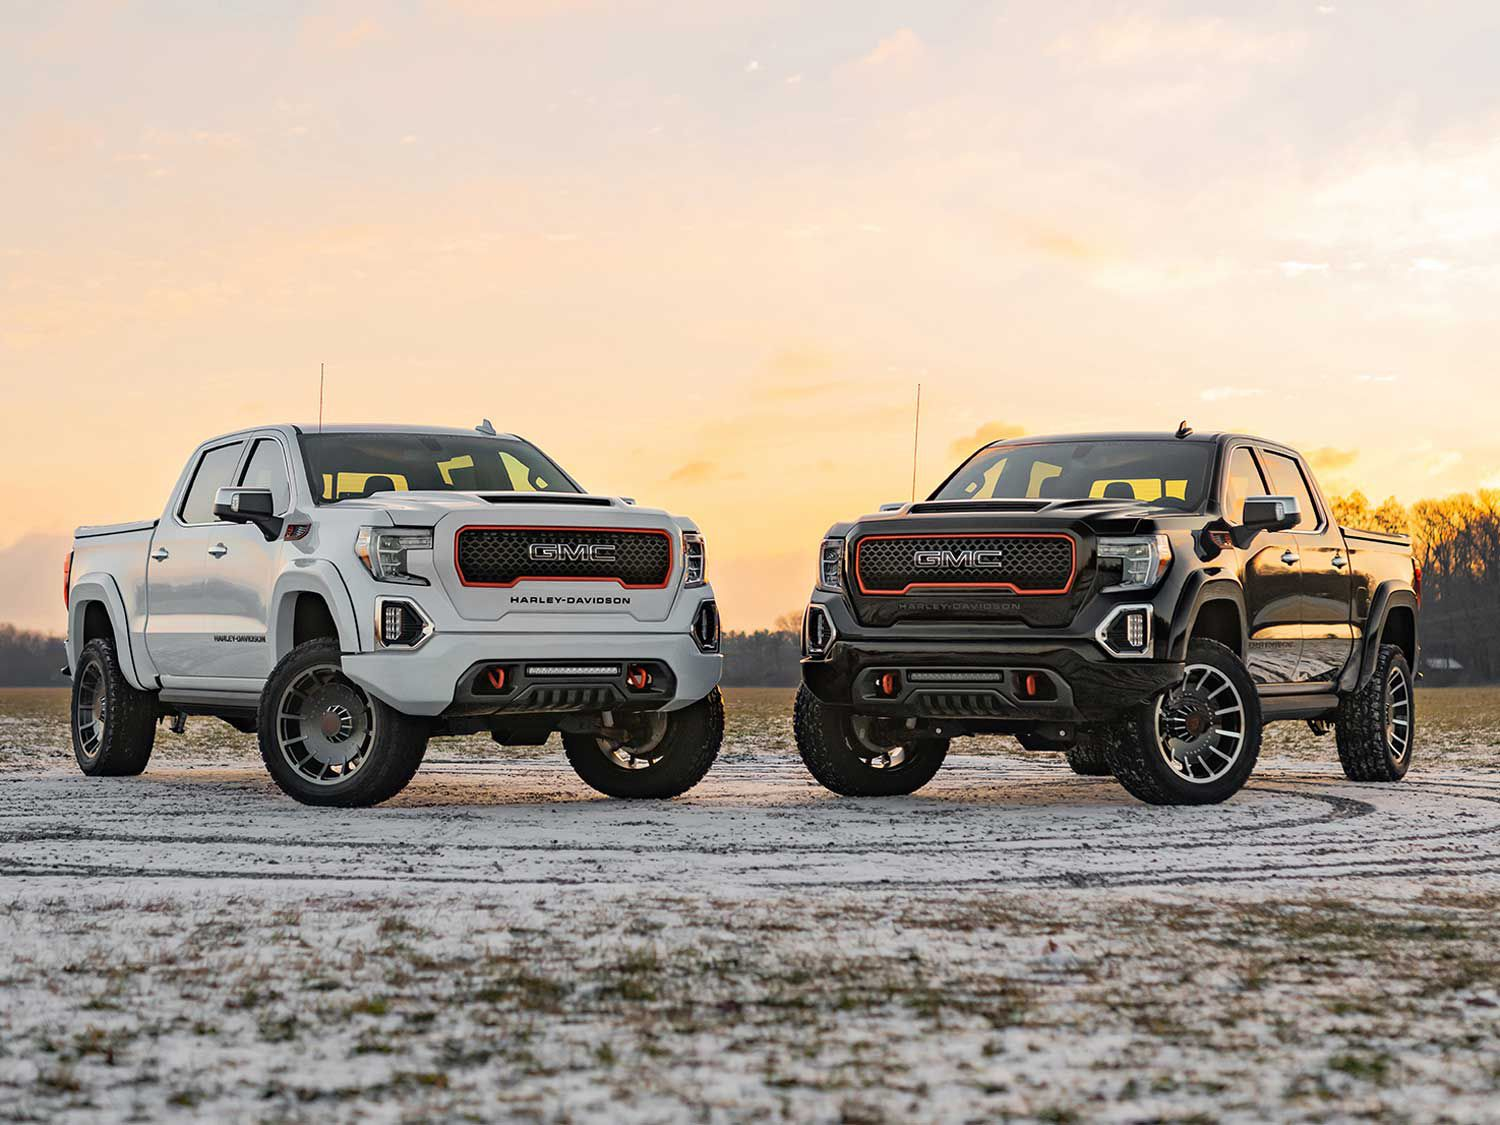 The 2020 Harley-Davidson Limited-Edition GMC Sierra is built by longtime H-D collaborators from the Tuscany Motor Co. with an MSRP of $94,995. It will be available in either Summit White or Onyx Black versions.